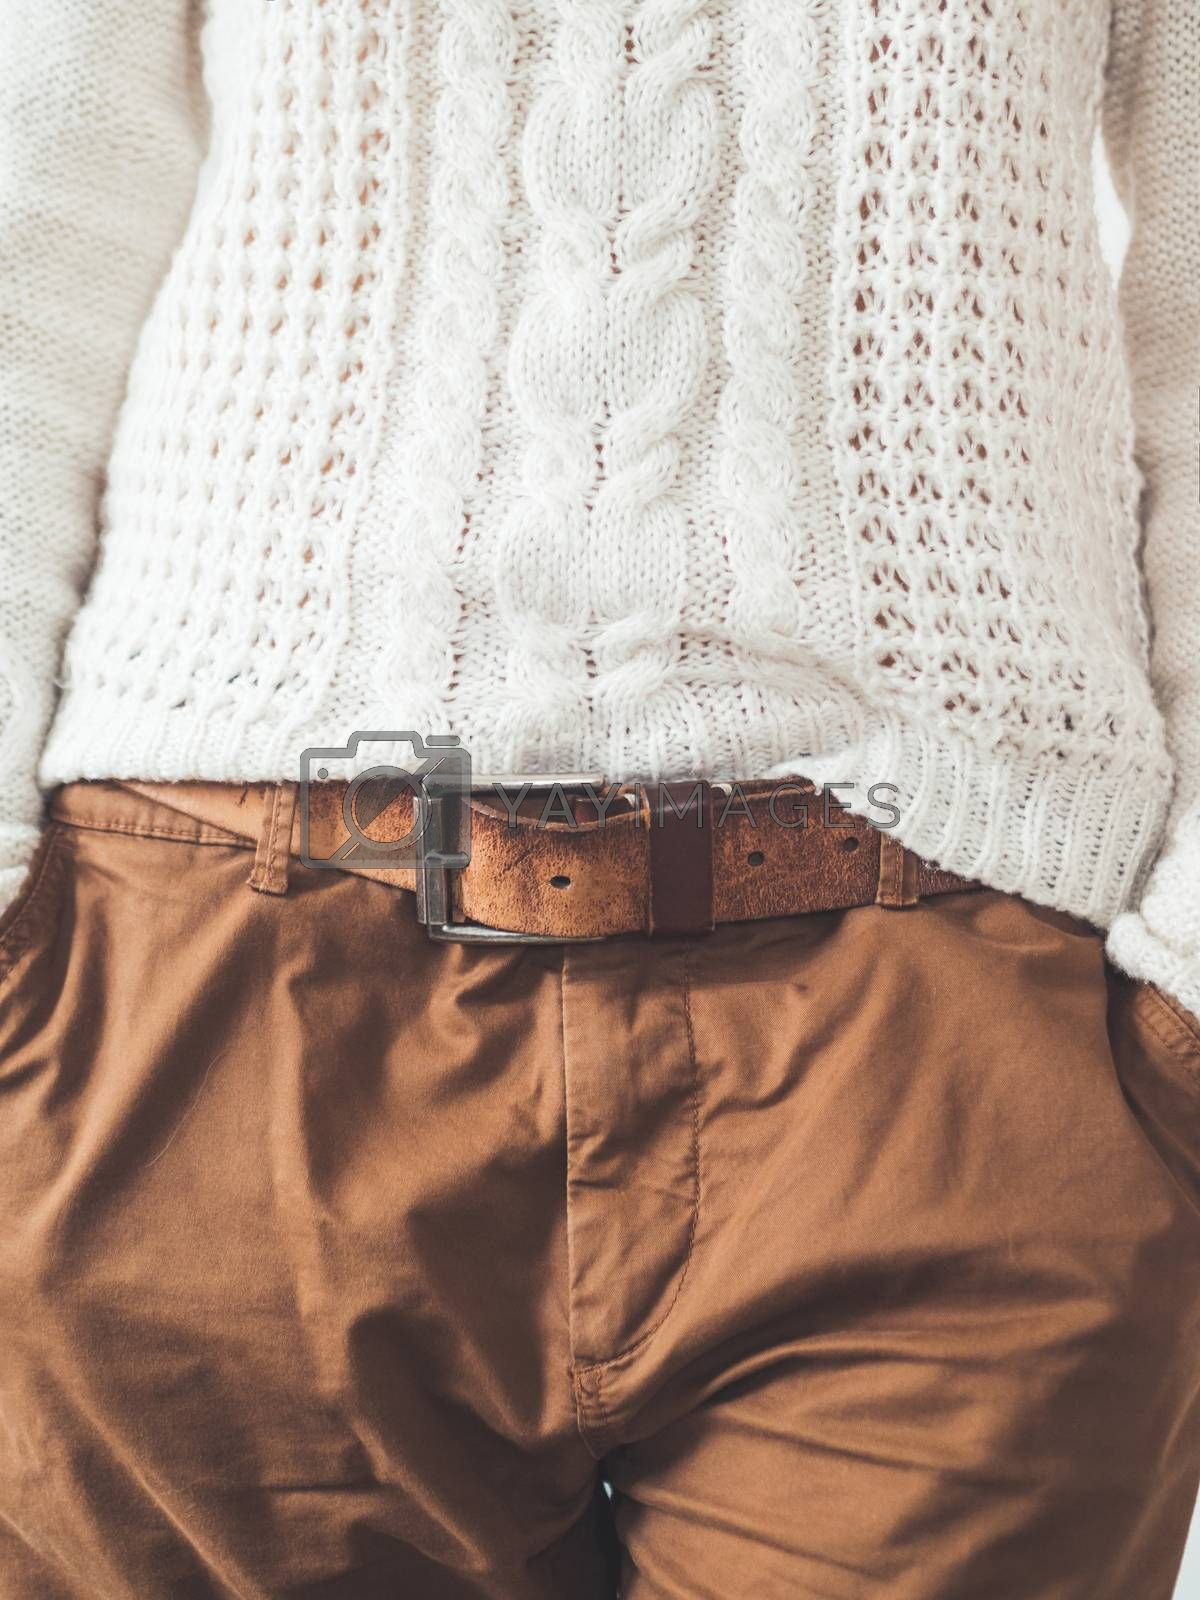 Royalty free image of Woman in cable-knit white sweater with Scandinavian patter and b by aksenovko